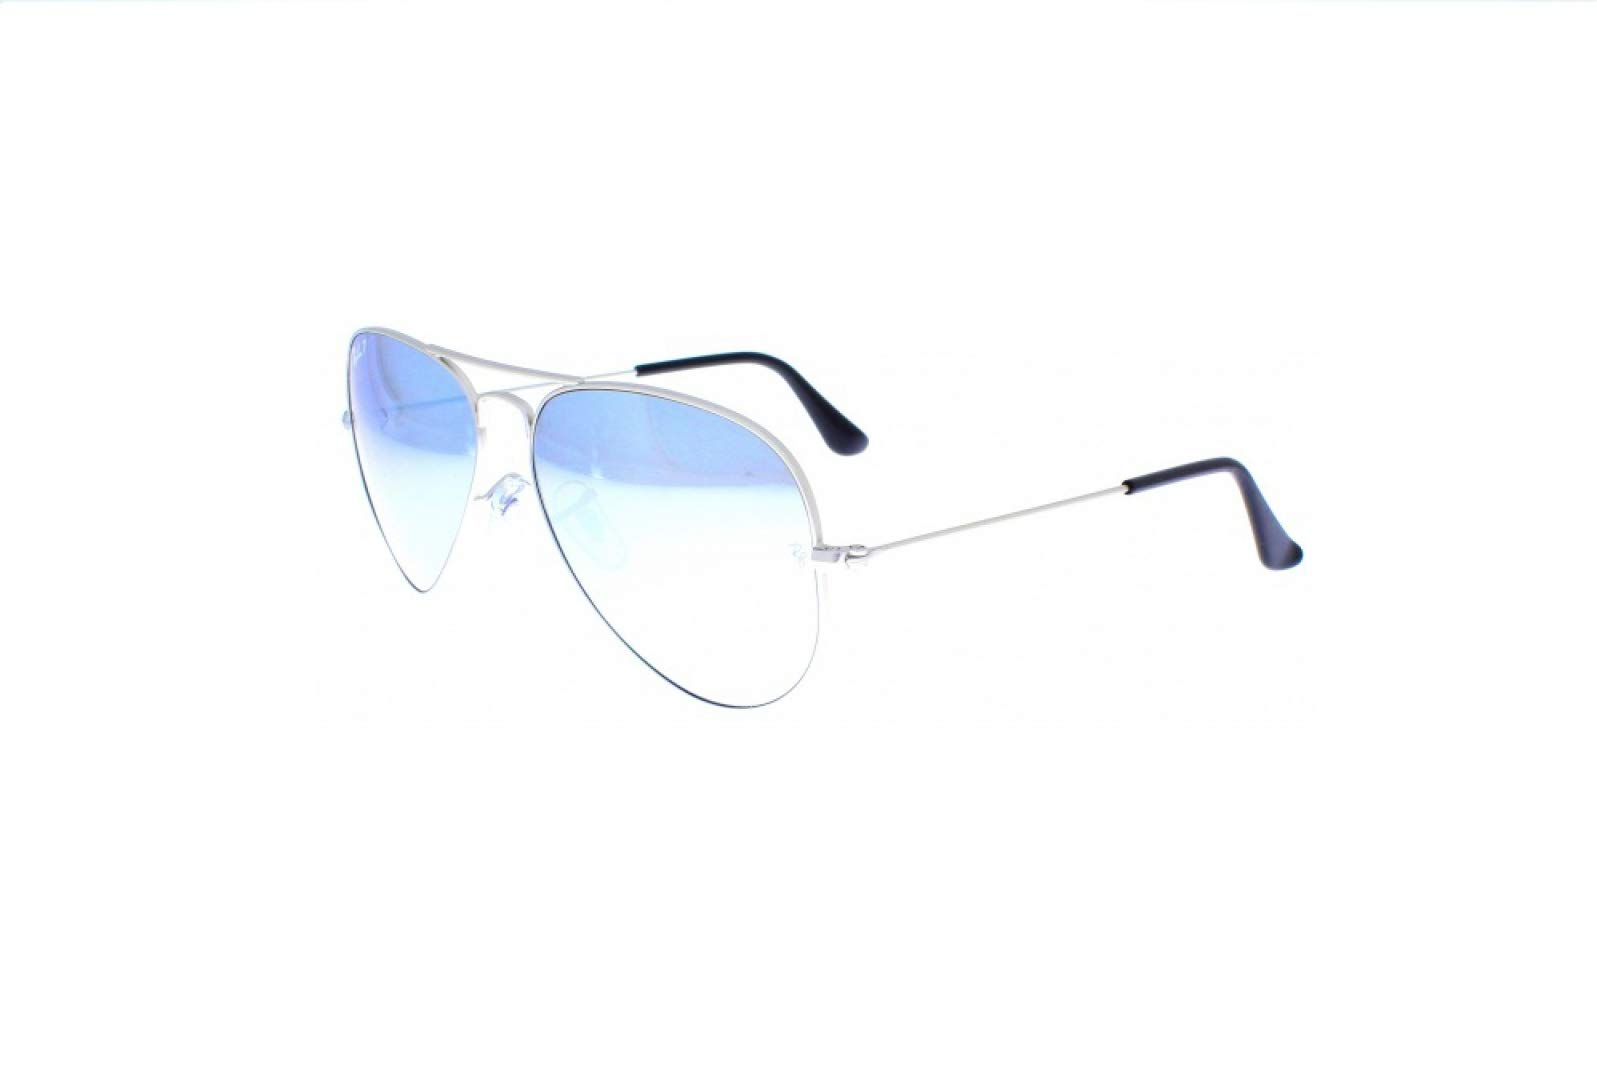 Ray-Ban Original Aviator Sunglasses (RB3025) Silver Matte/Silver Metal - Polarized - 58mm